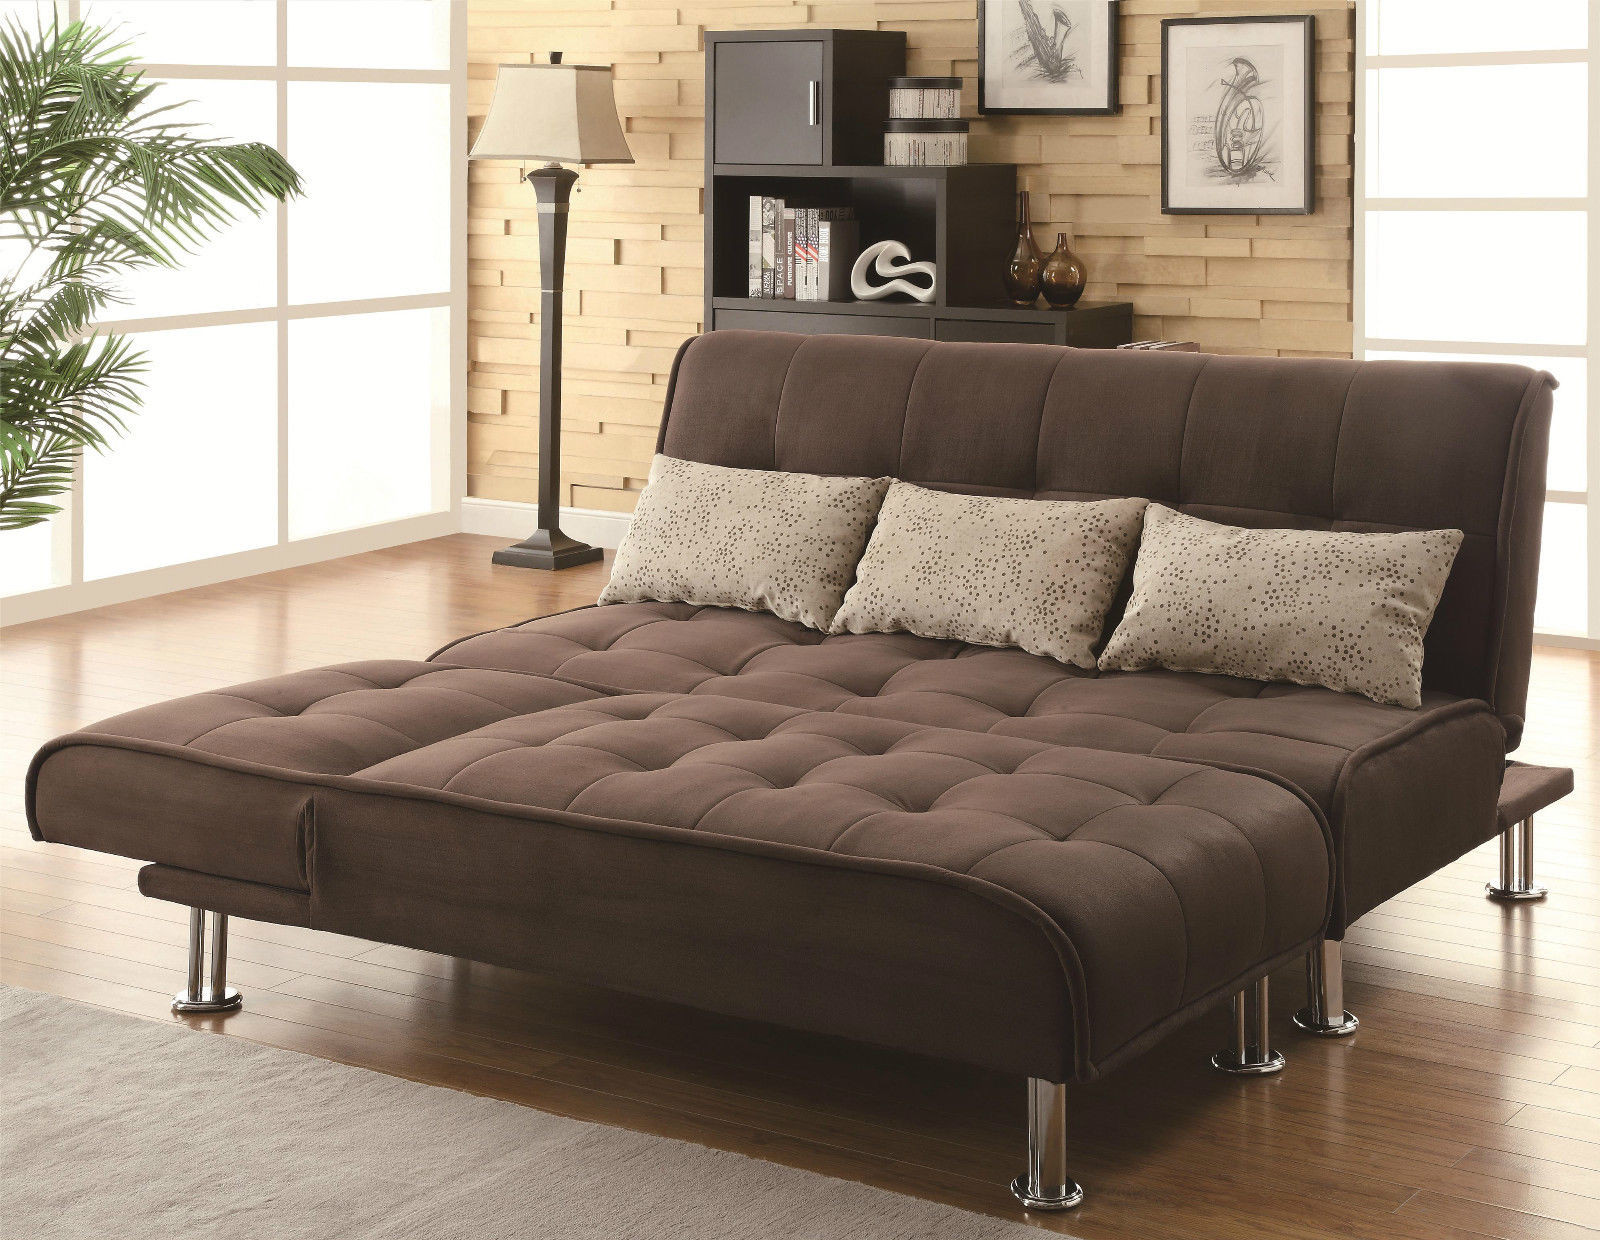 Best ideas about Sofa Sleeper Sectional . Save or Pin How to Get the Best Small Sectional Sleeper Sofa Now.